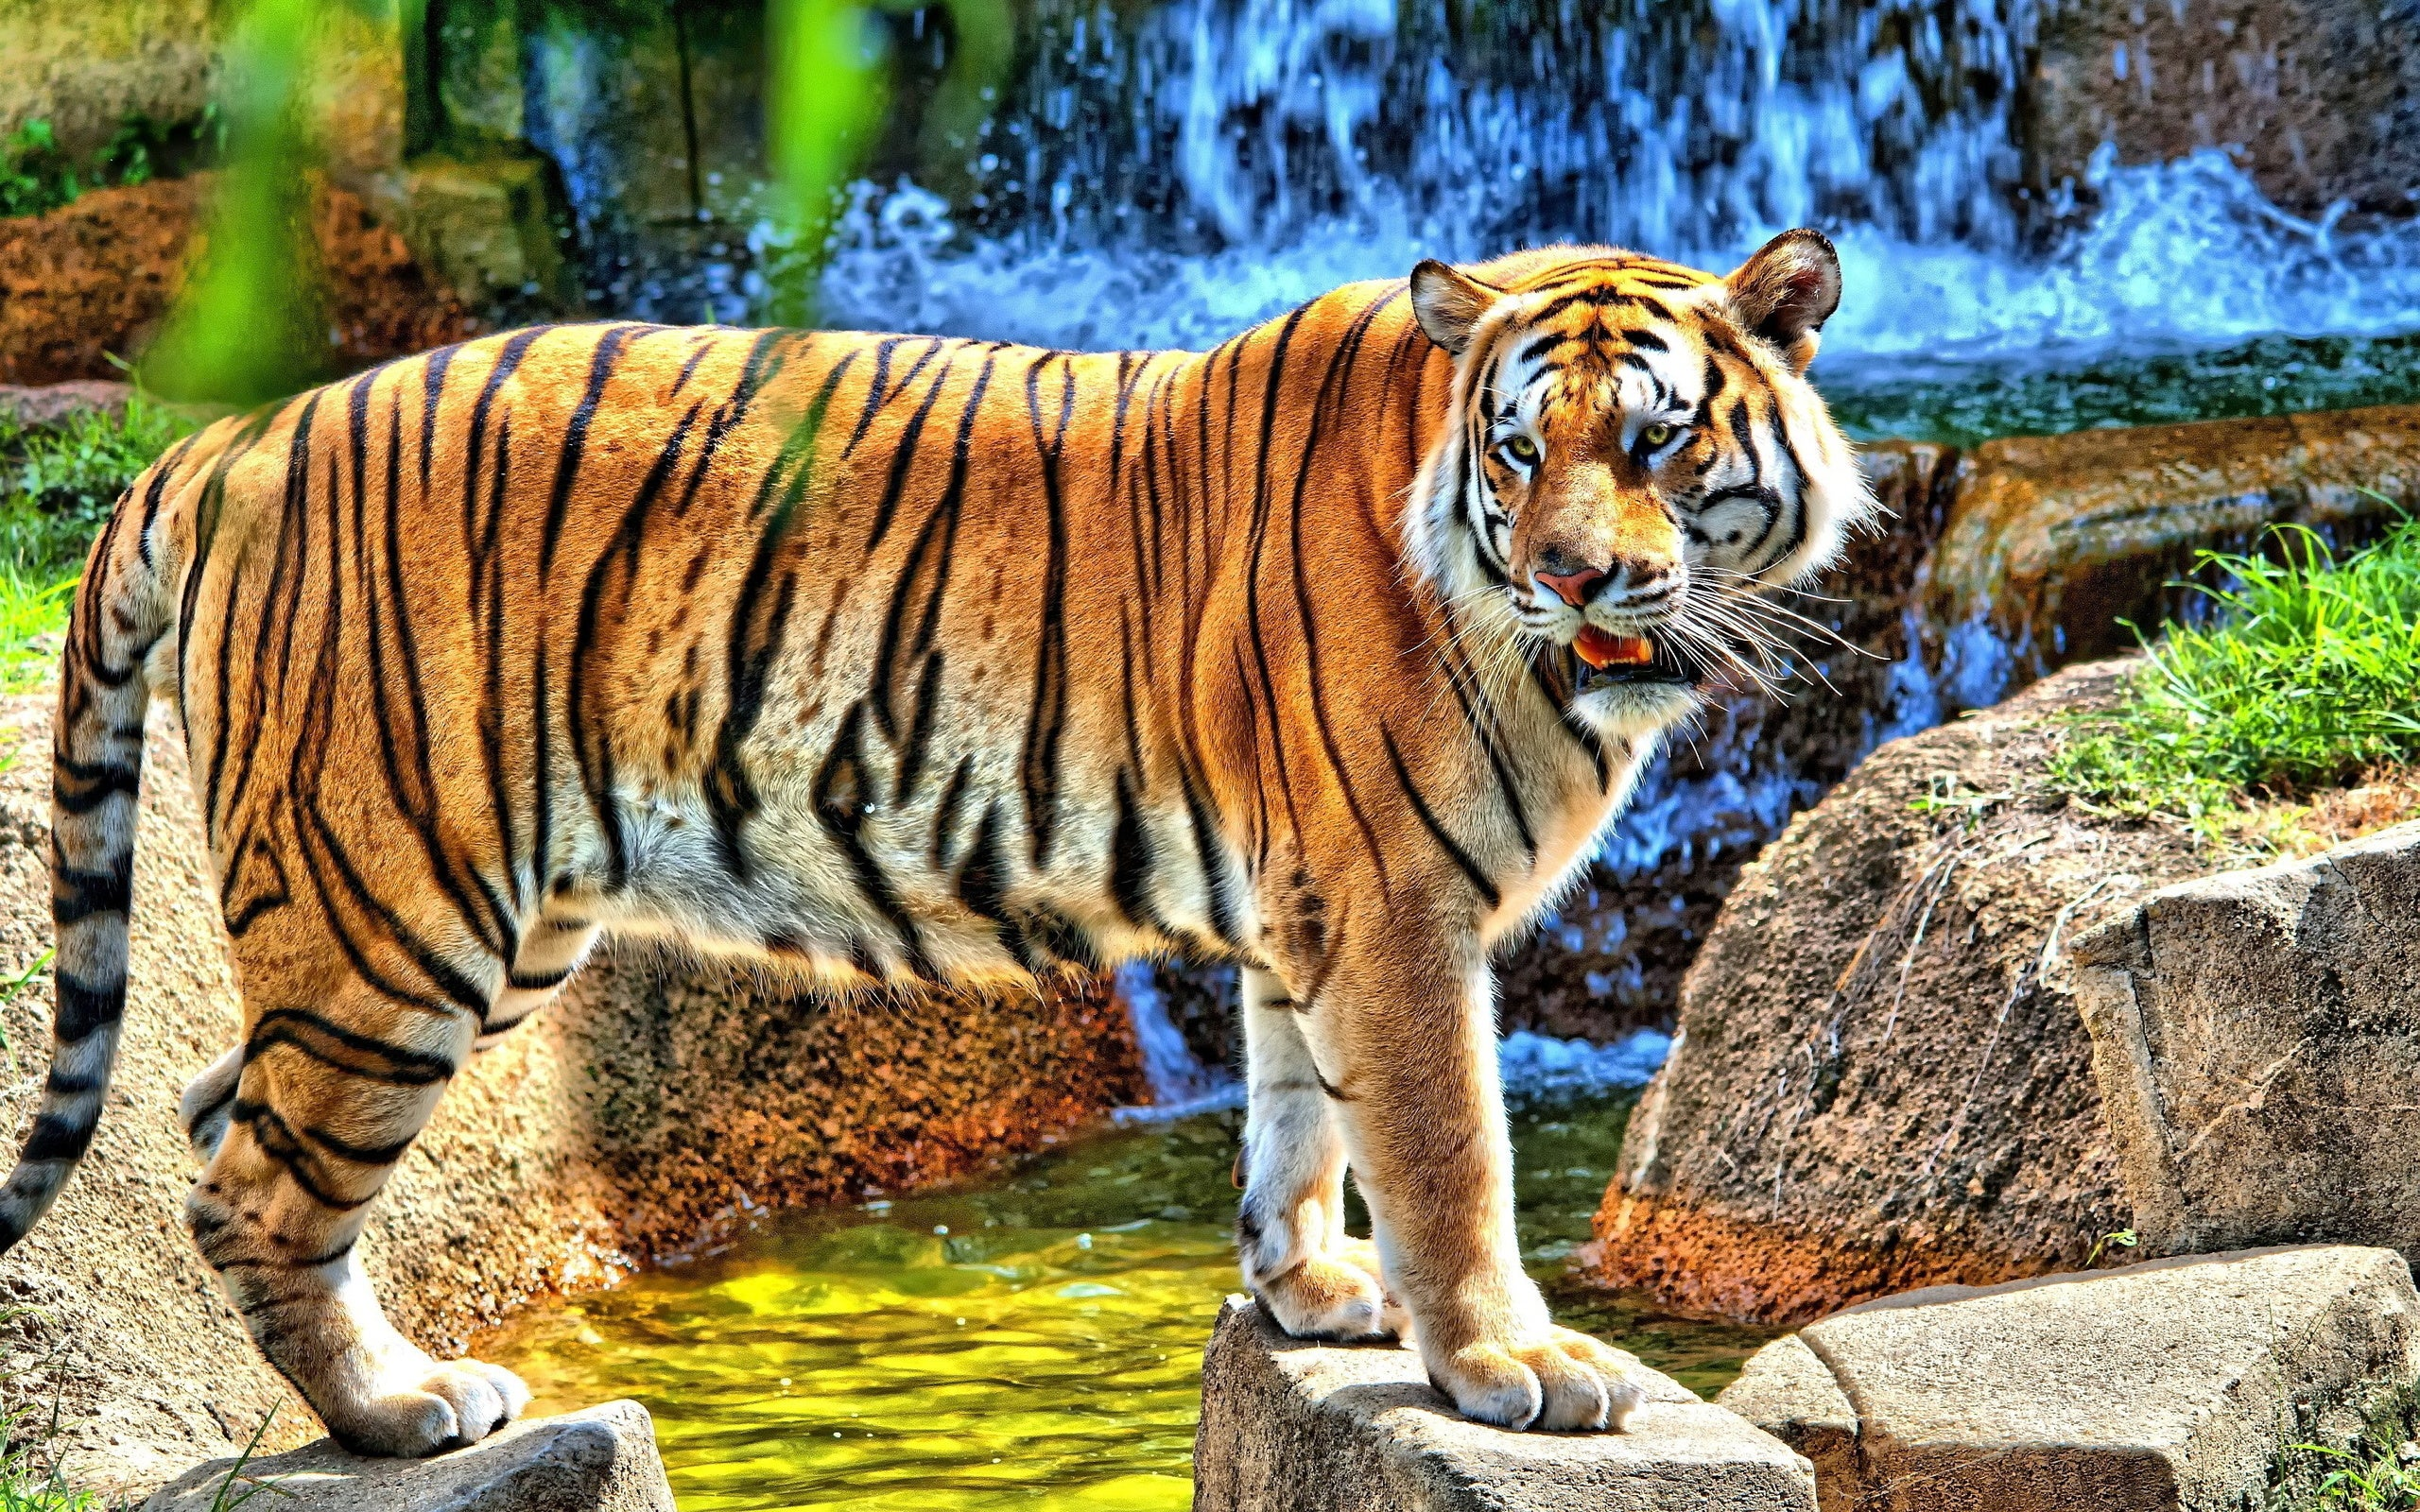 Tiger 4k Wallpapers For Your Desktop Or Mobile Screen Free And Easy To Download